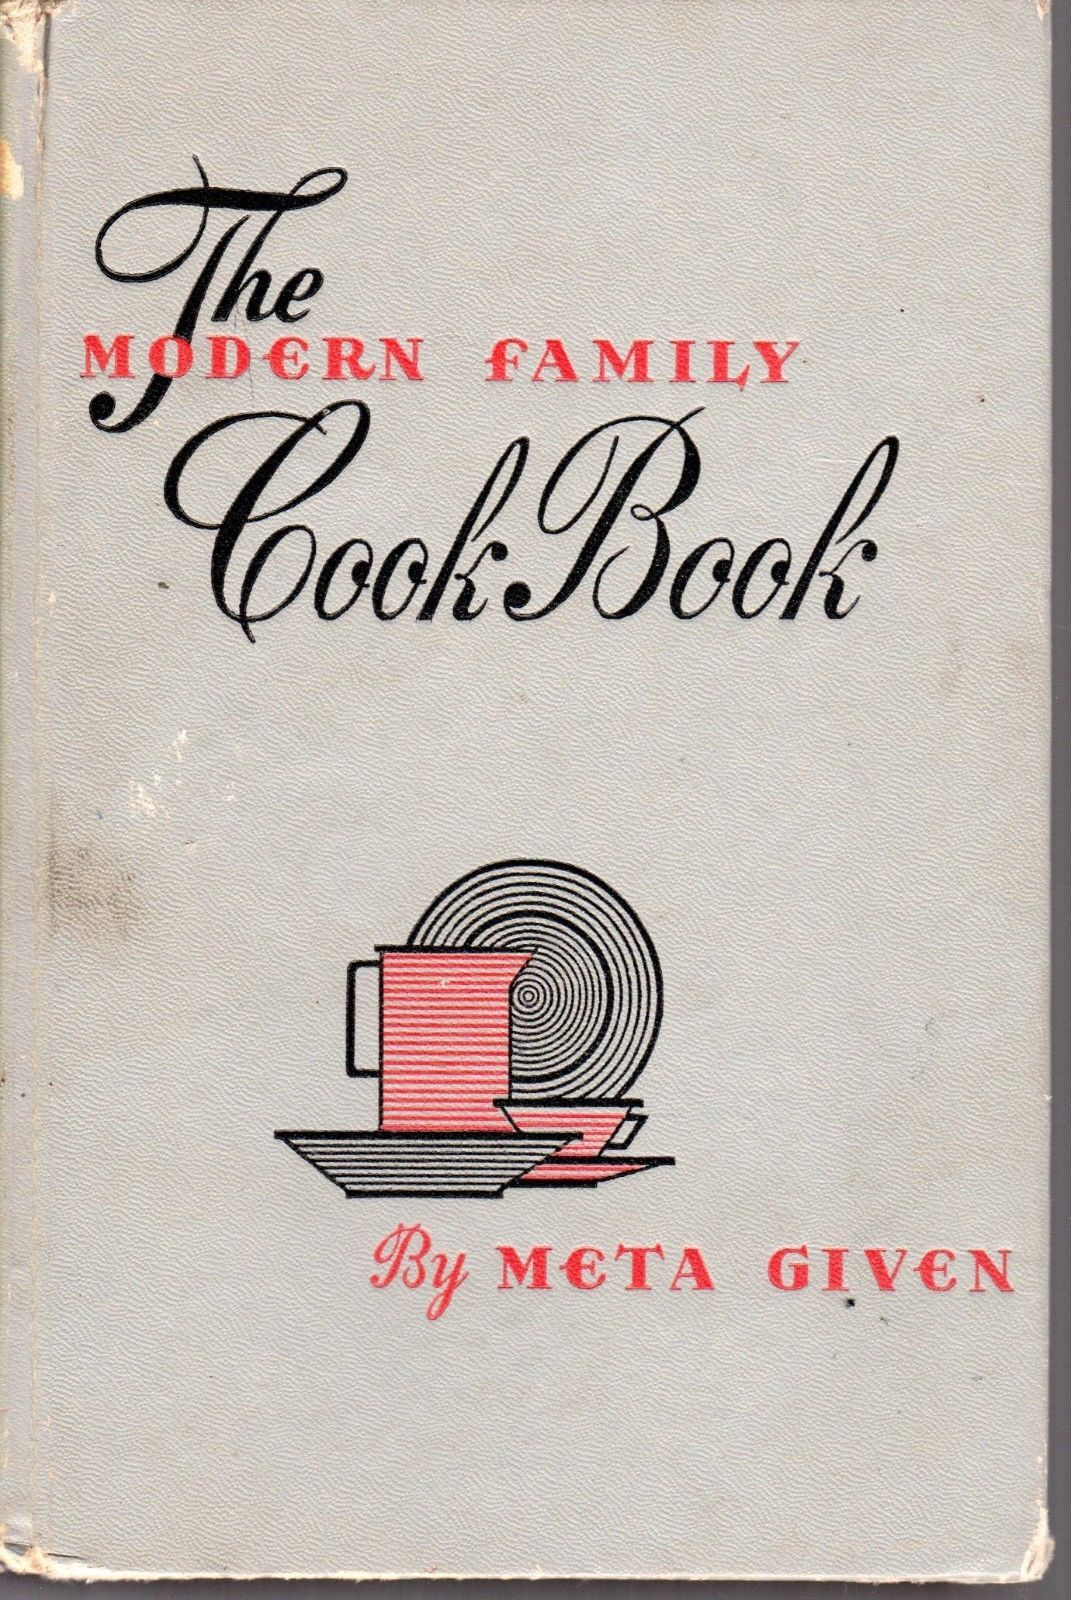 Vintage 1958 The Modern Family Cook Book by Meta Given American Cuisine